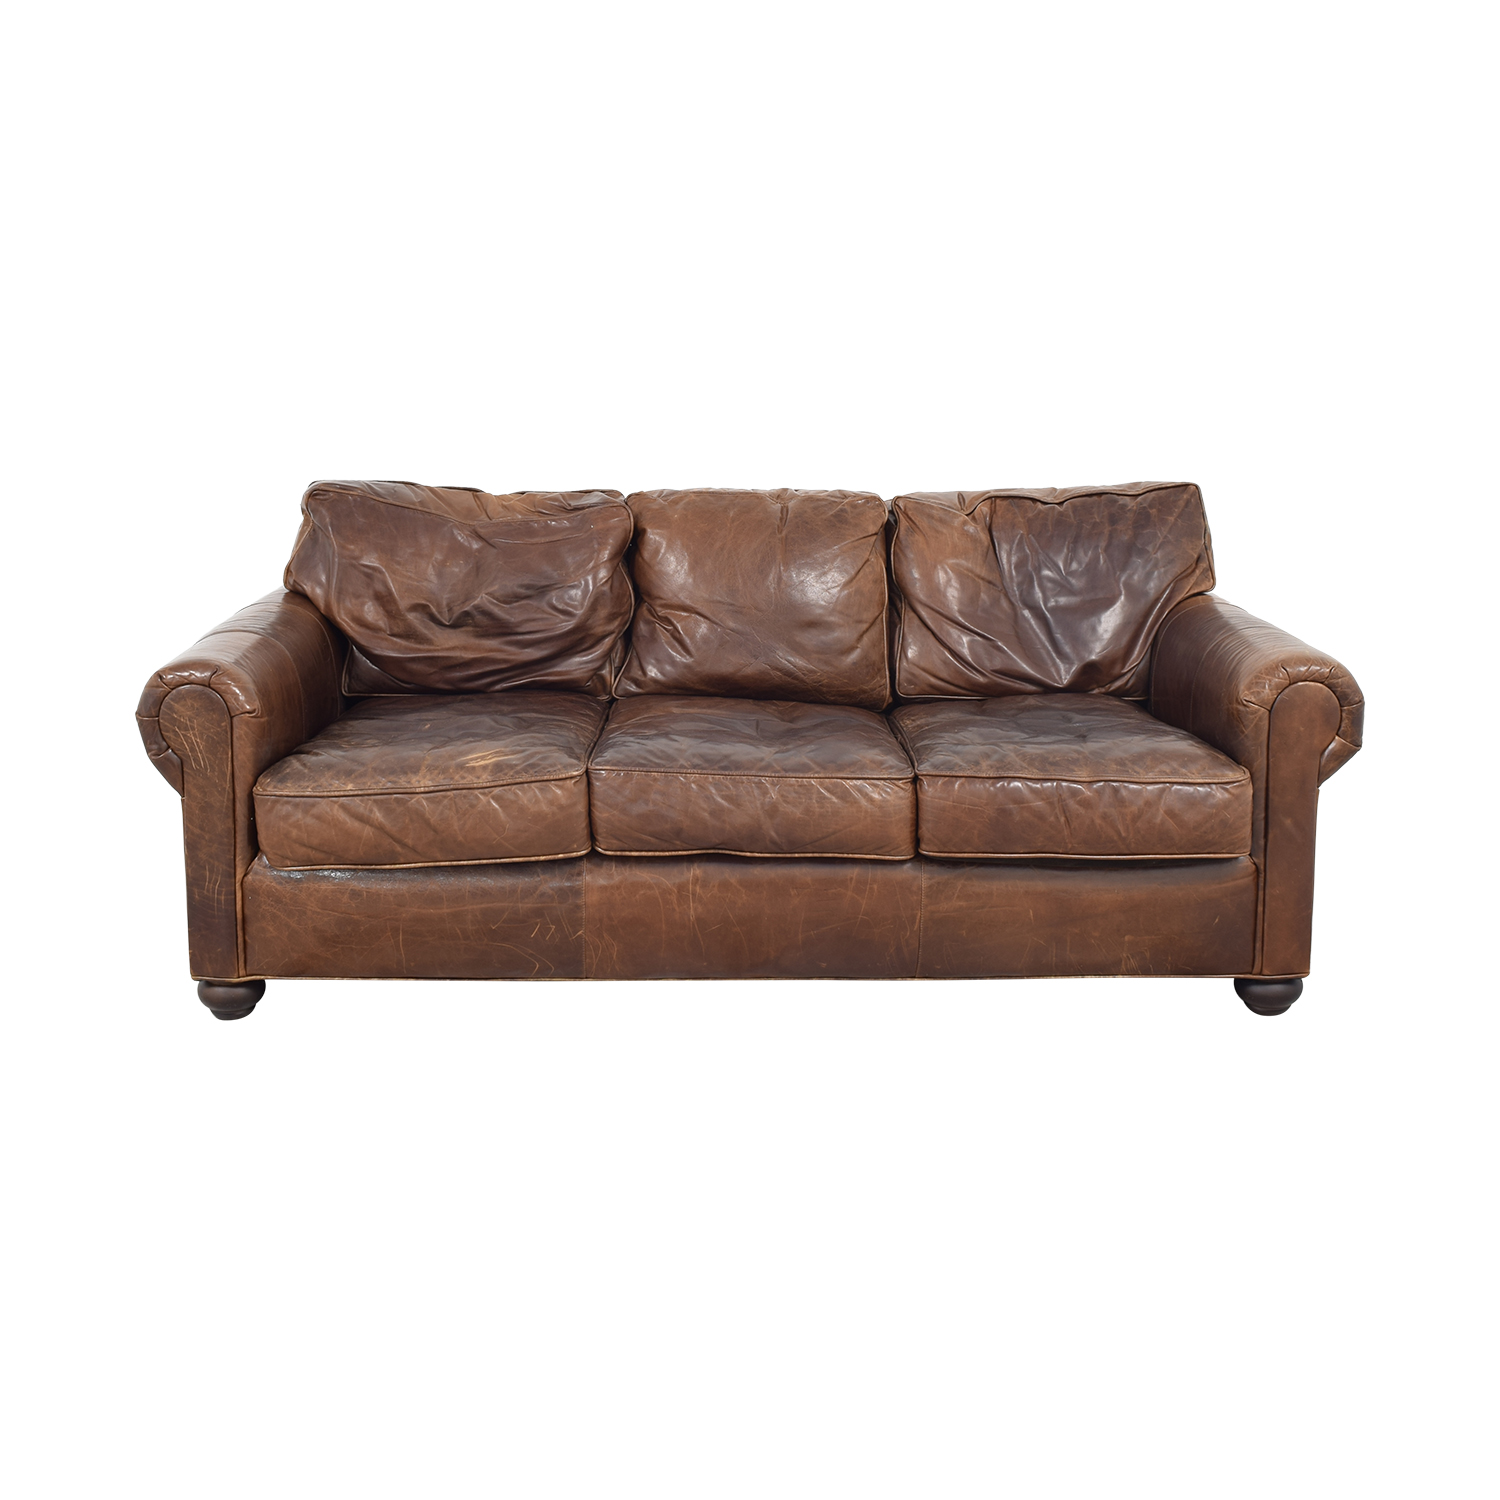 Restoration Hardware Restoration Hardware Original Lancaster Leather Sofa ct